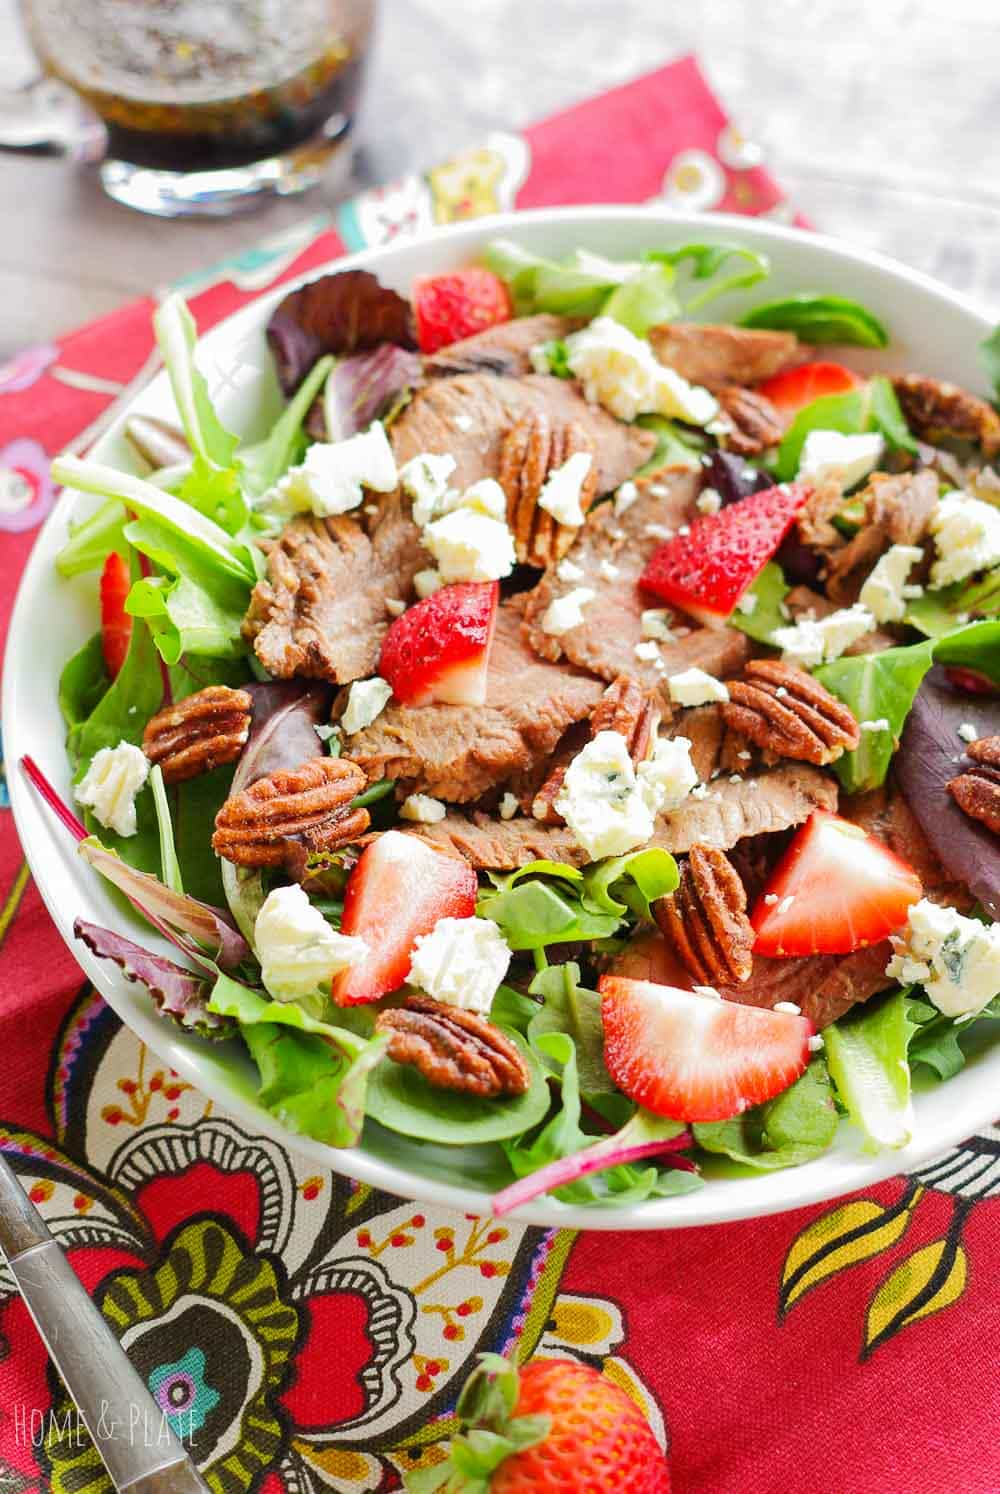 Steak Salad with Strawberries on a red napkin